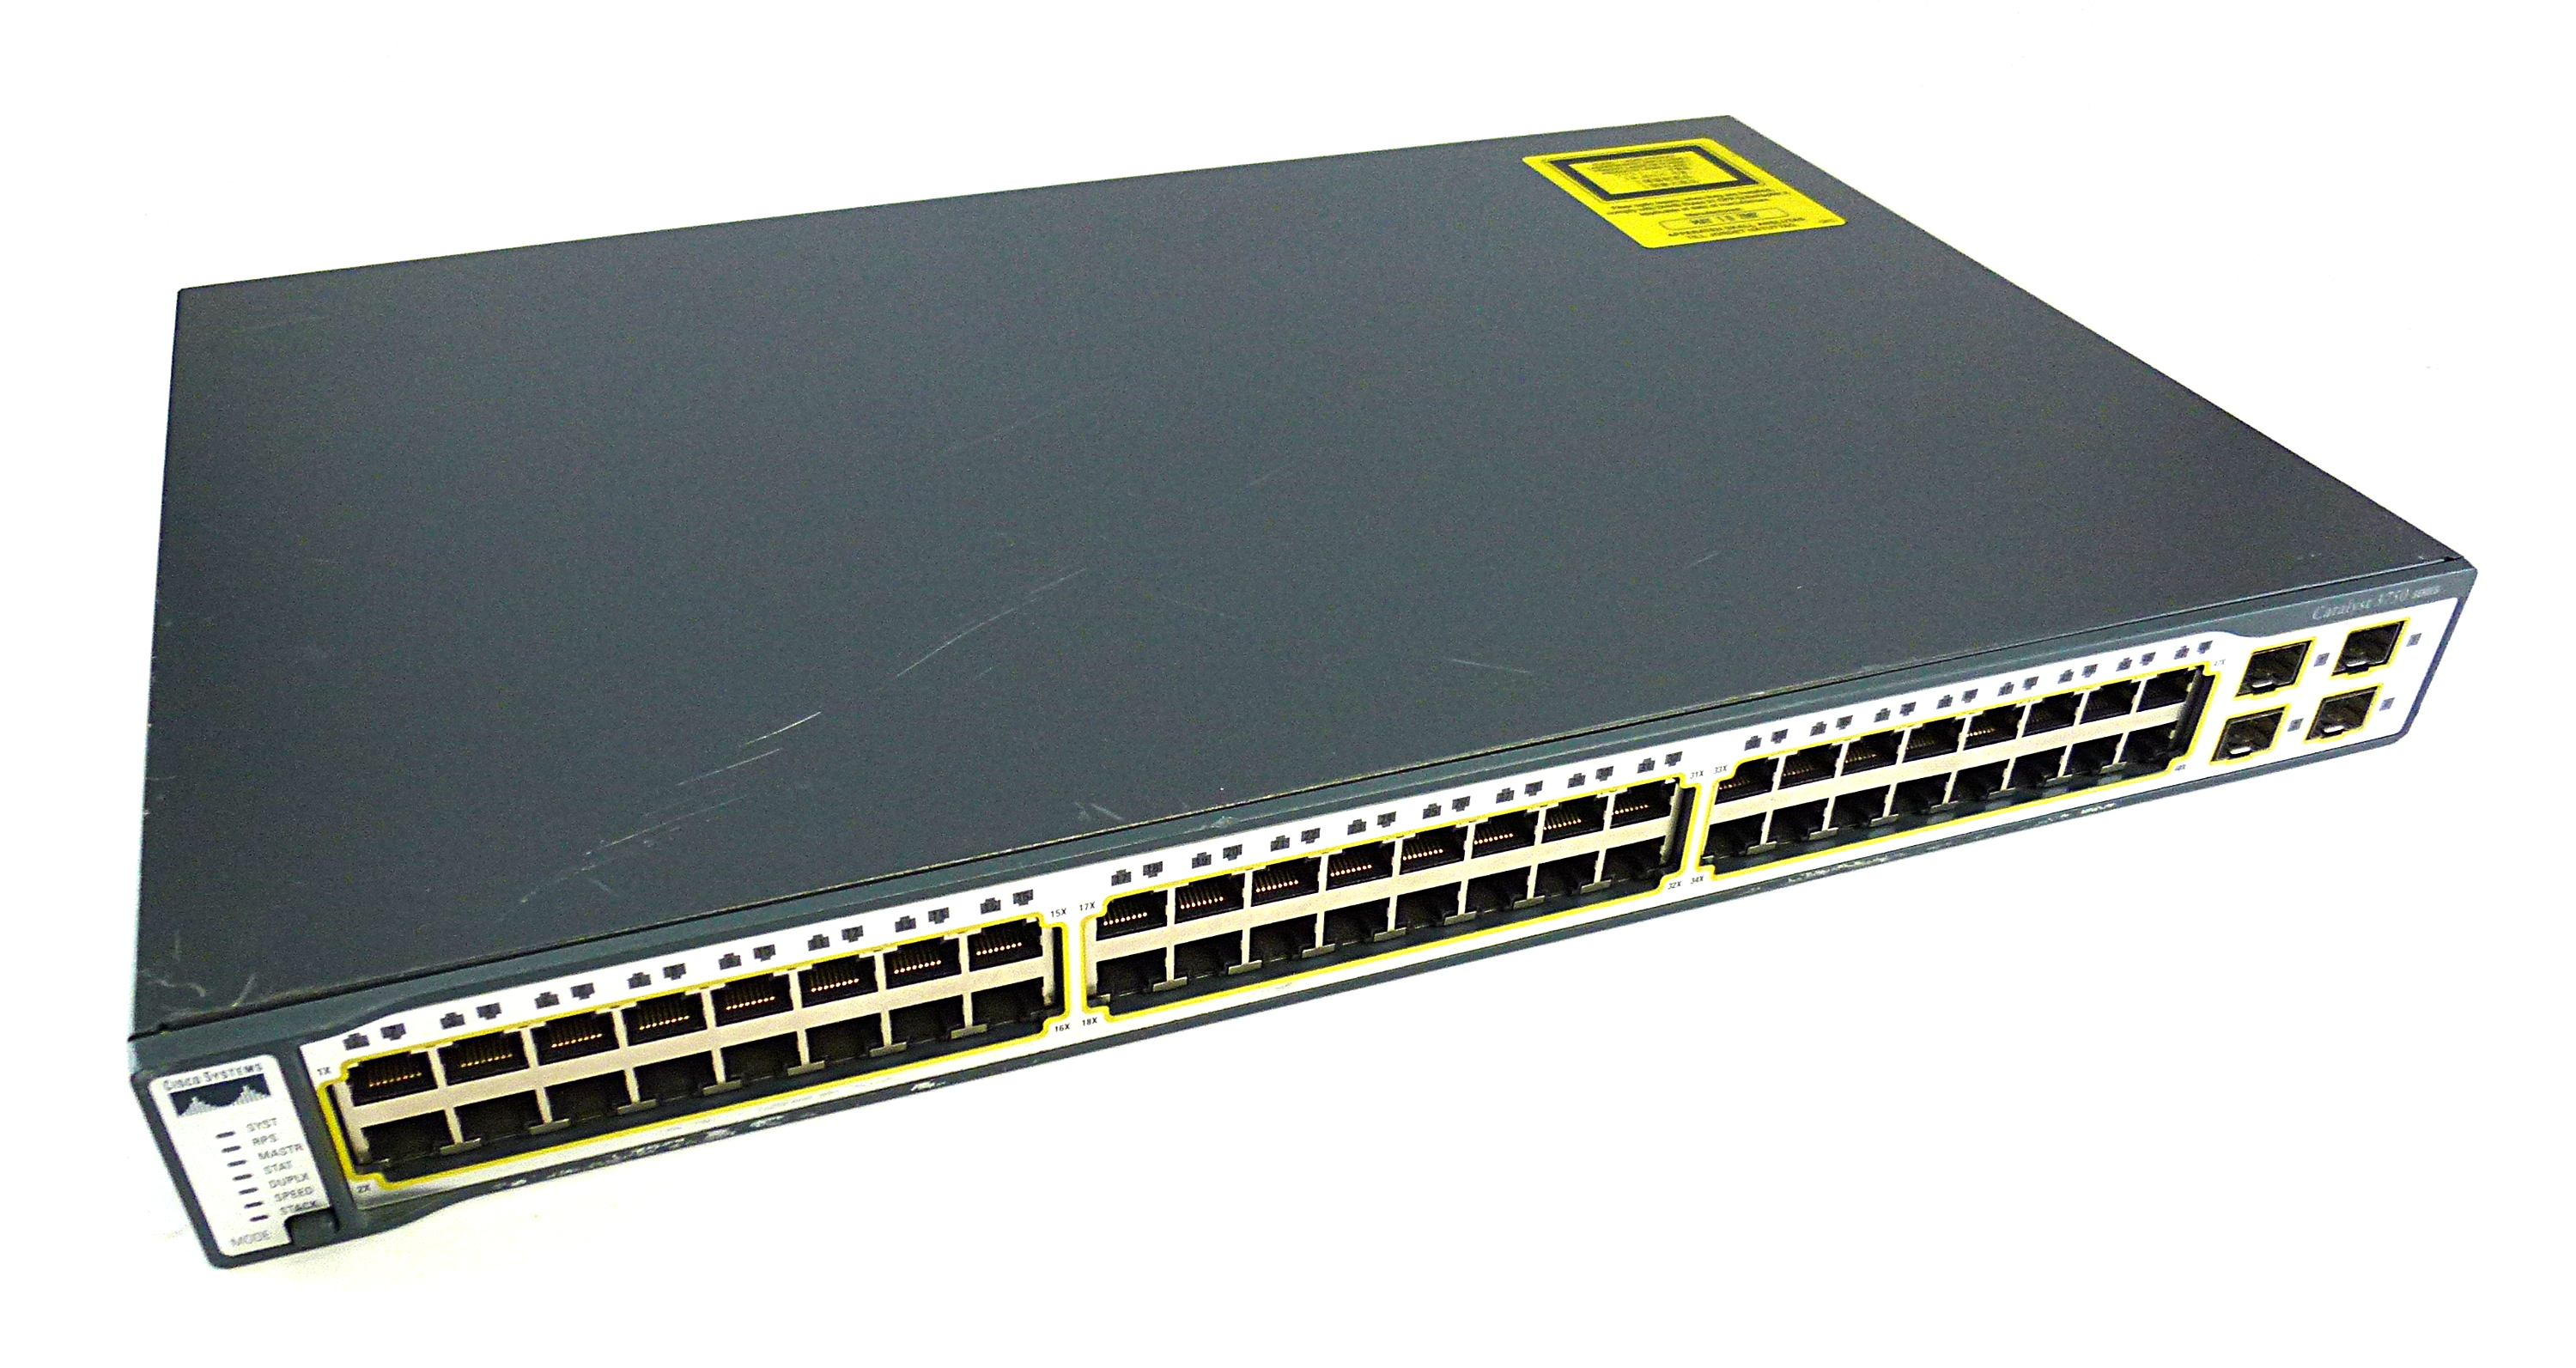 Cisco WS-C3750-48TS-S V05 Catalyst 3750 series IOS 12 2(25)SEE3 48-Port  Switch